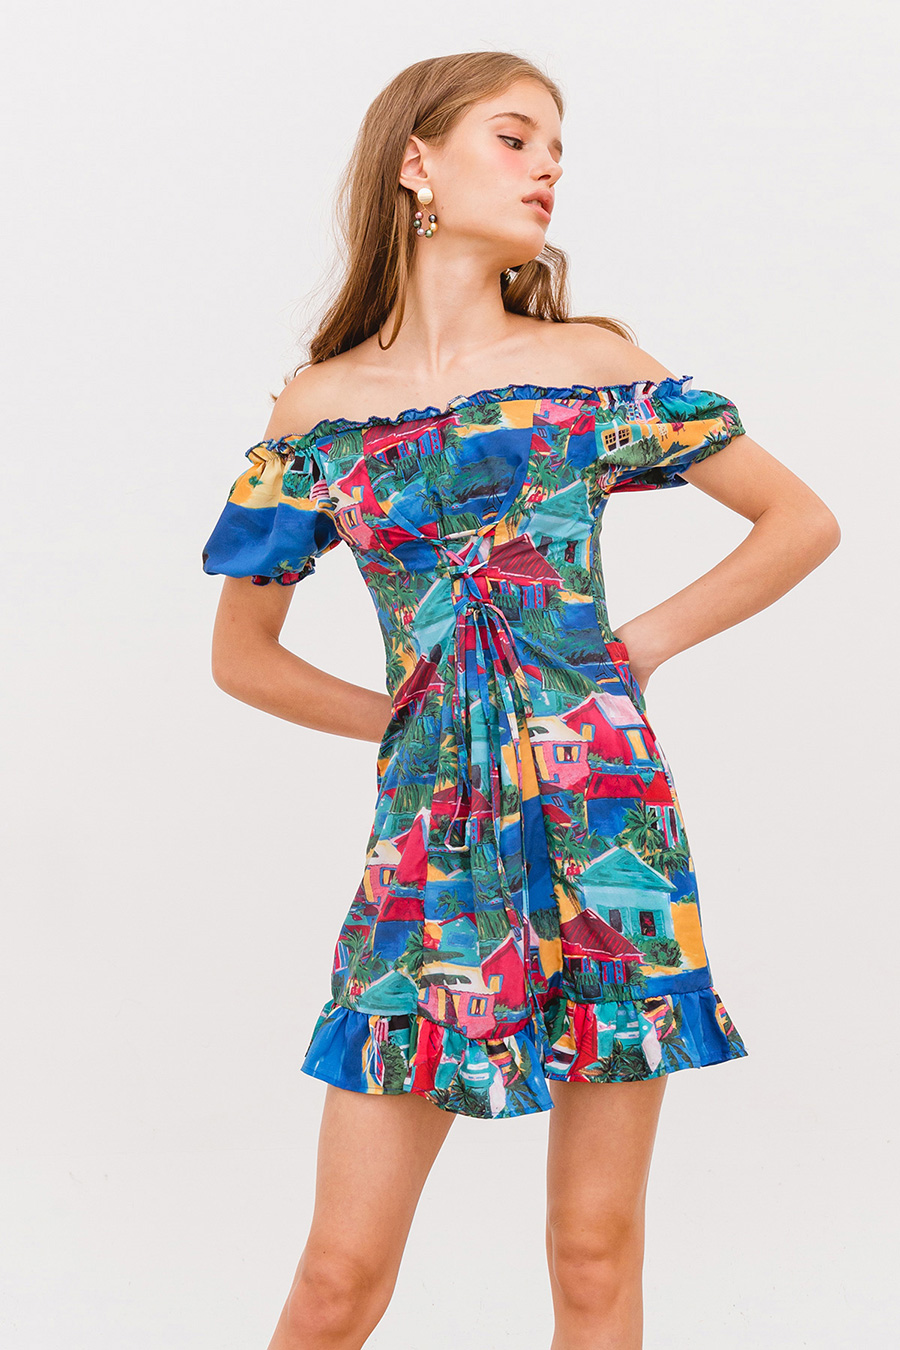 LAGOON DRESS - PICASSO BLUE